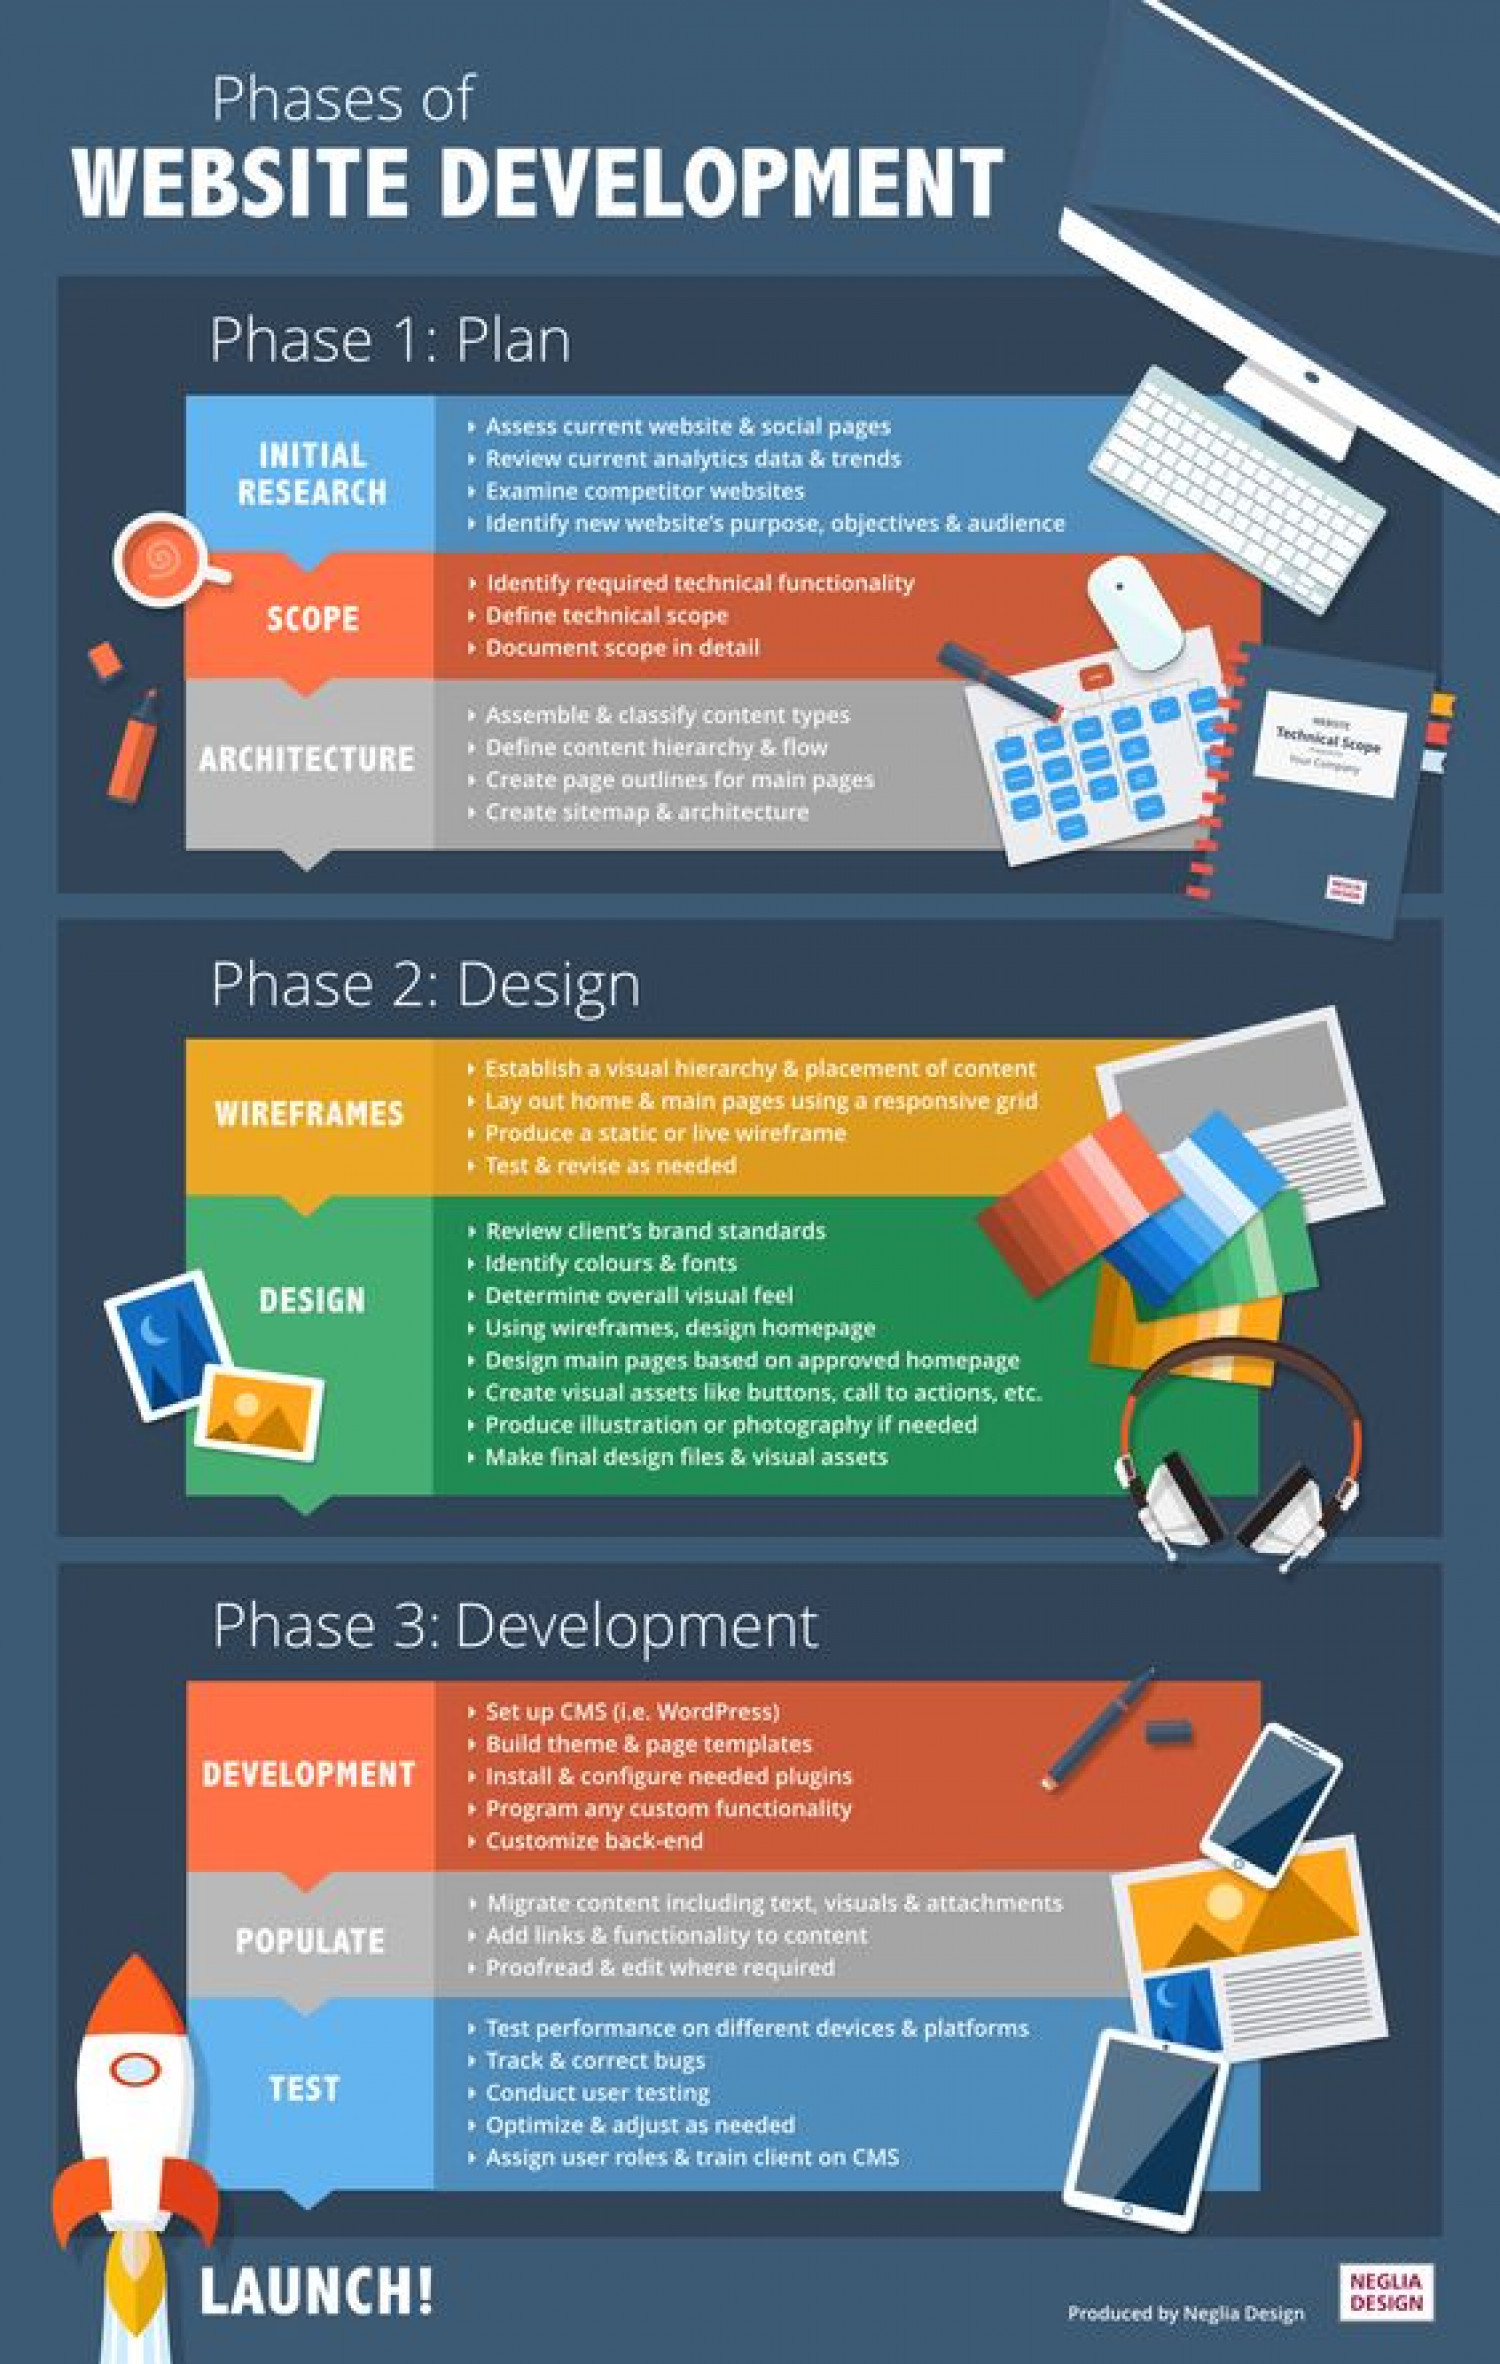 Phases of Website Development Infographic